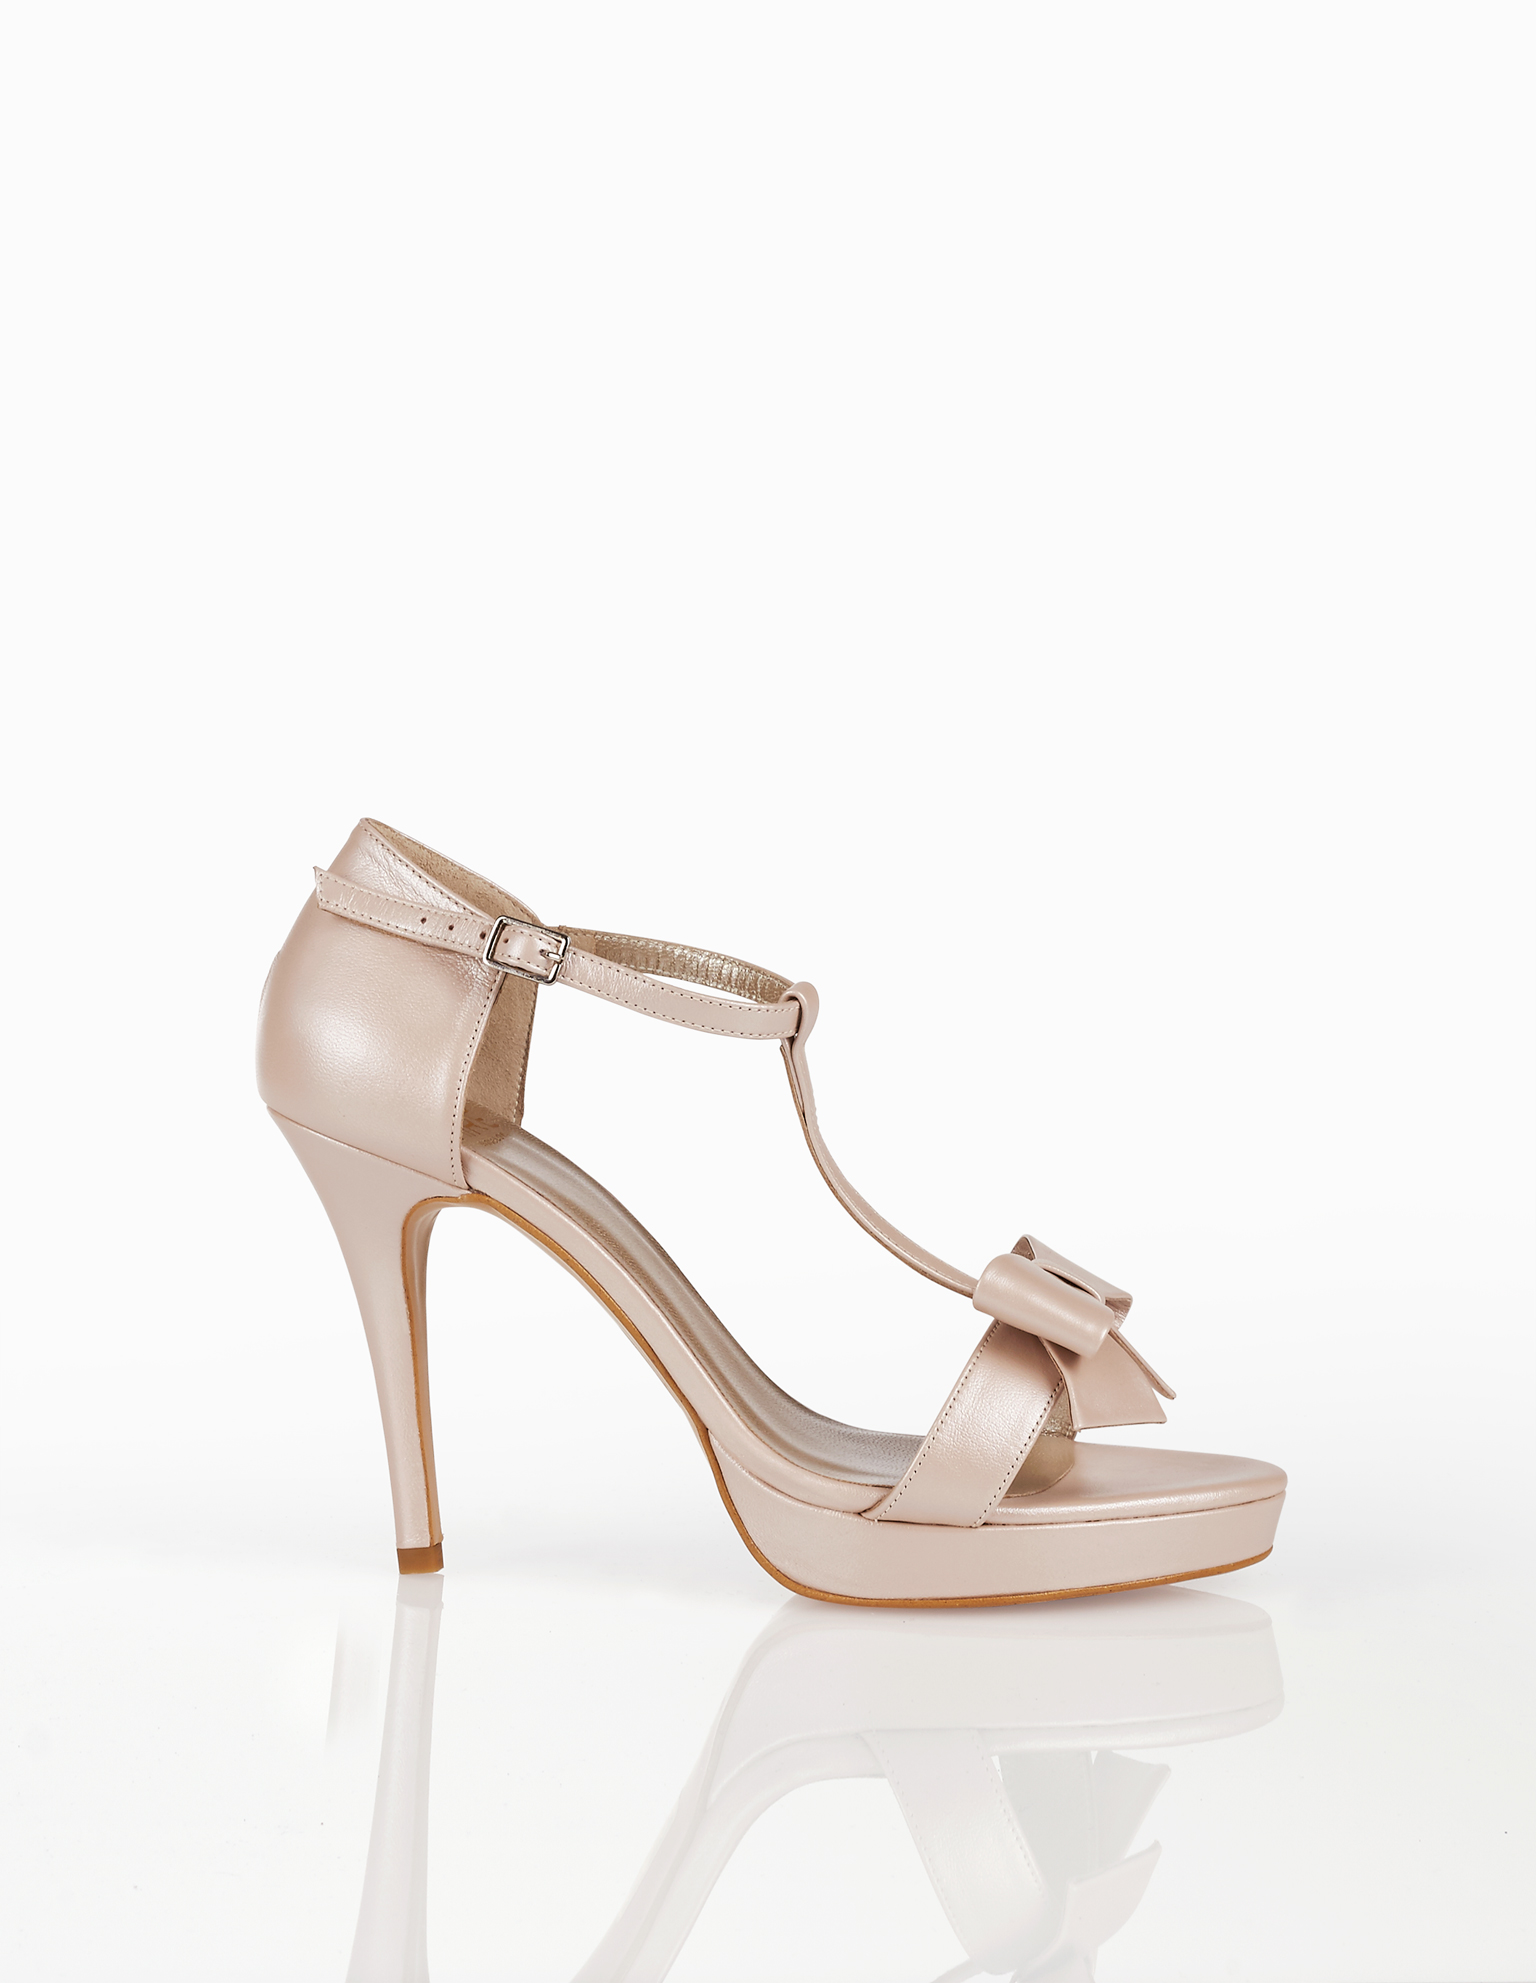 Leather bridal platform sandals with closed high heel and bow detail, available in natural, nude, gold and silver. 2018 AIRE BARCELONA Collection.